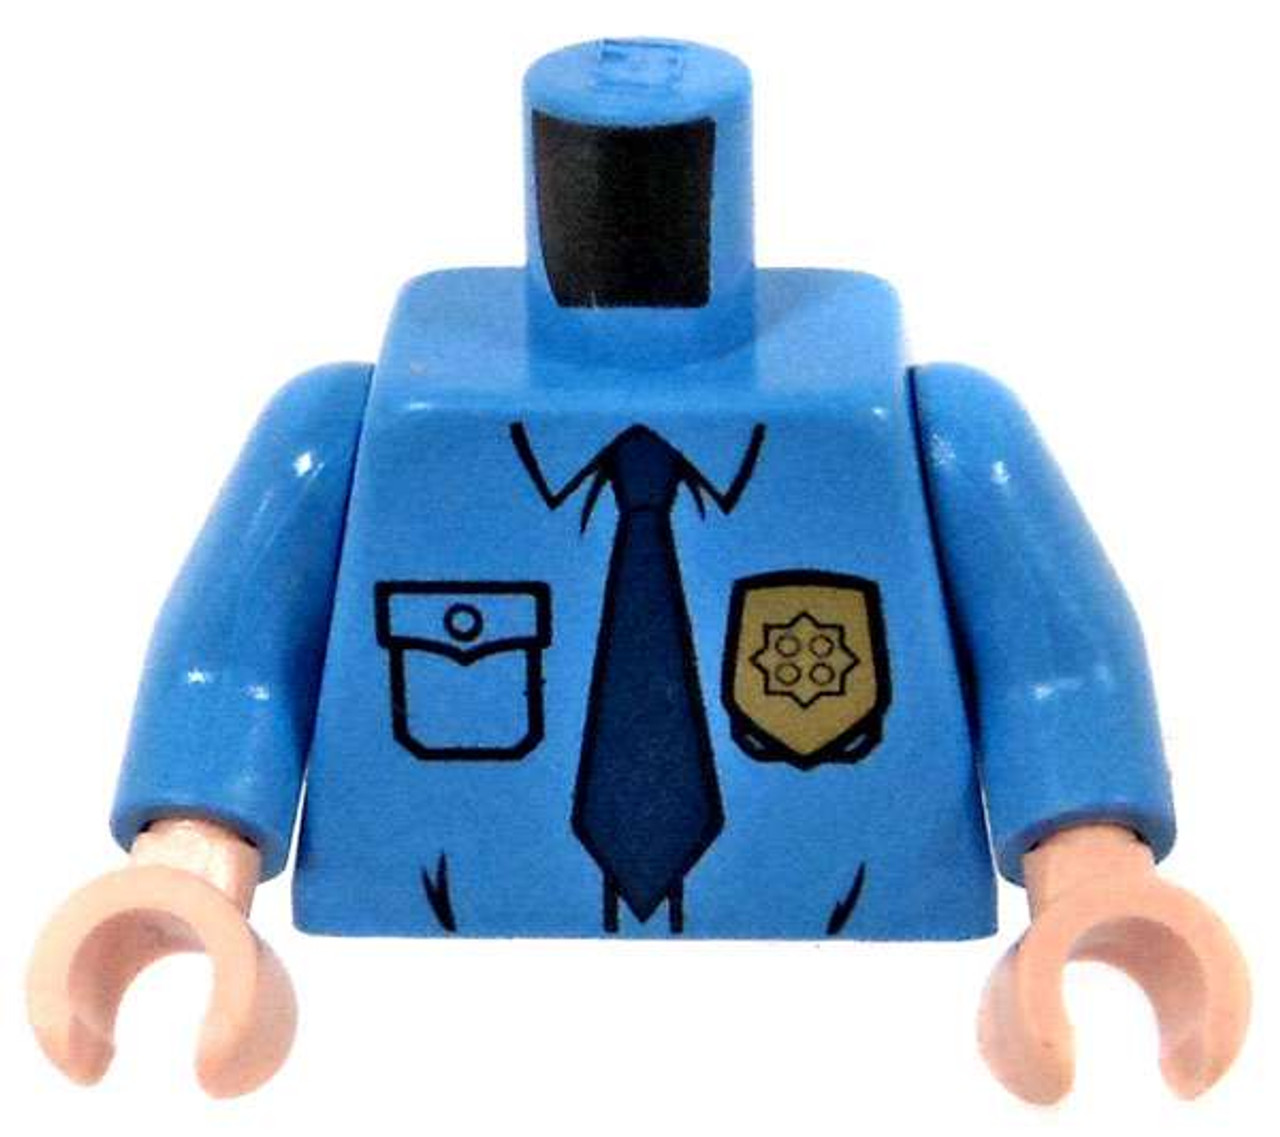 LEGO-MINIFIGURES X 1 WHITE TORSO WITH BLUE OVERALL AND V-NECK PARTS